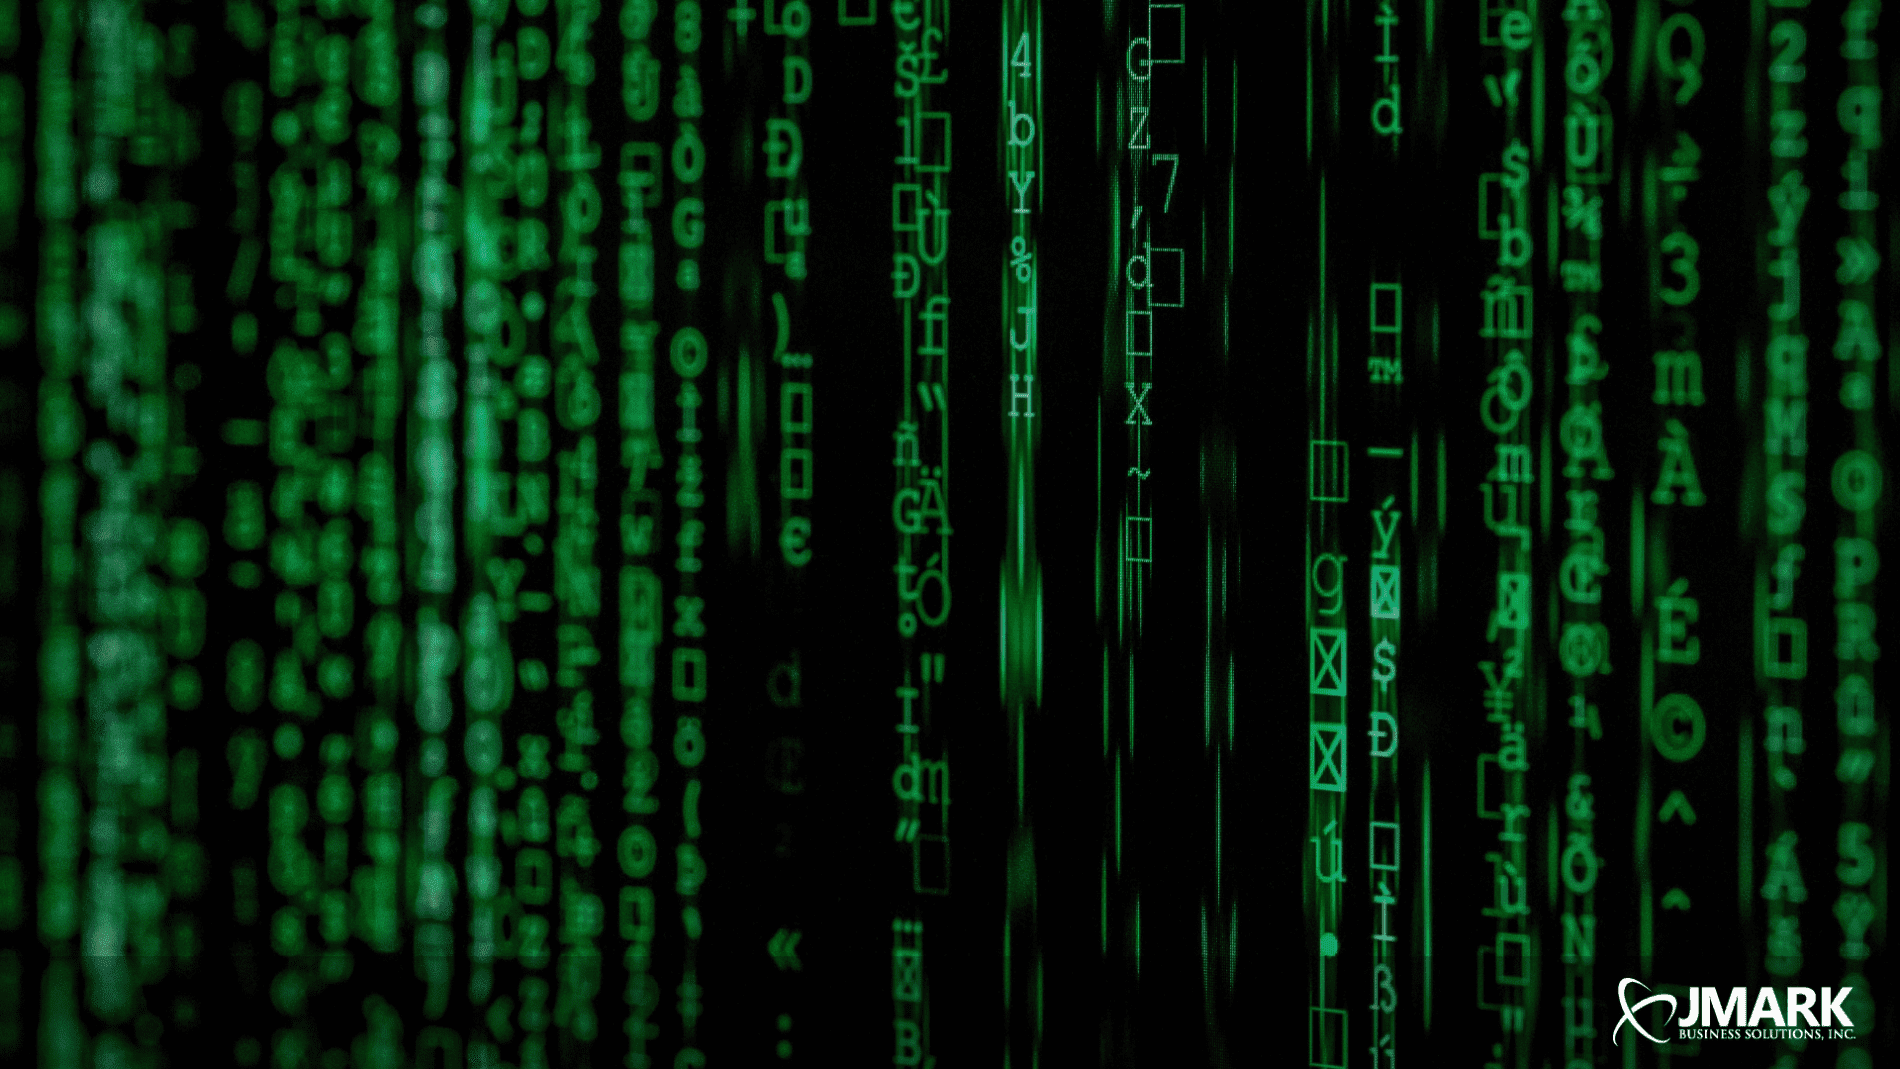 encryption - 5 Cybersecurity Myths You Believe That Are Making Your Business Vulnerable